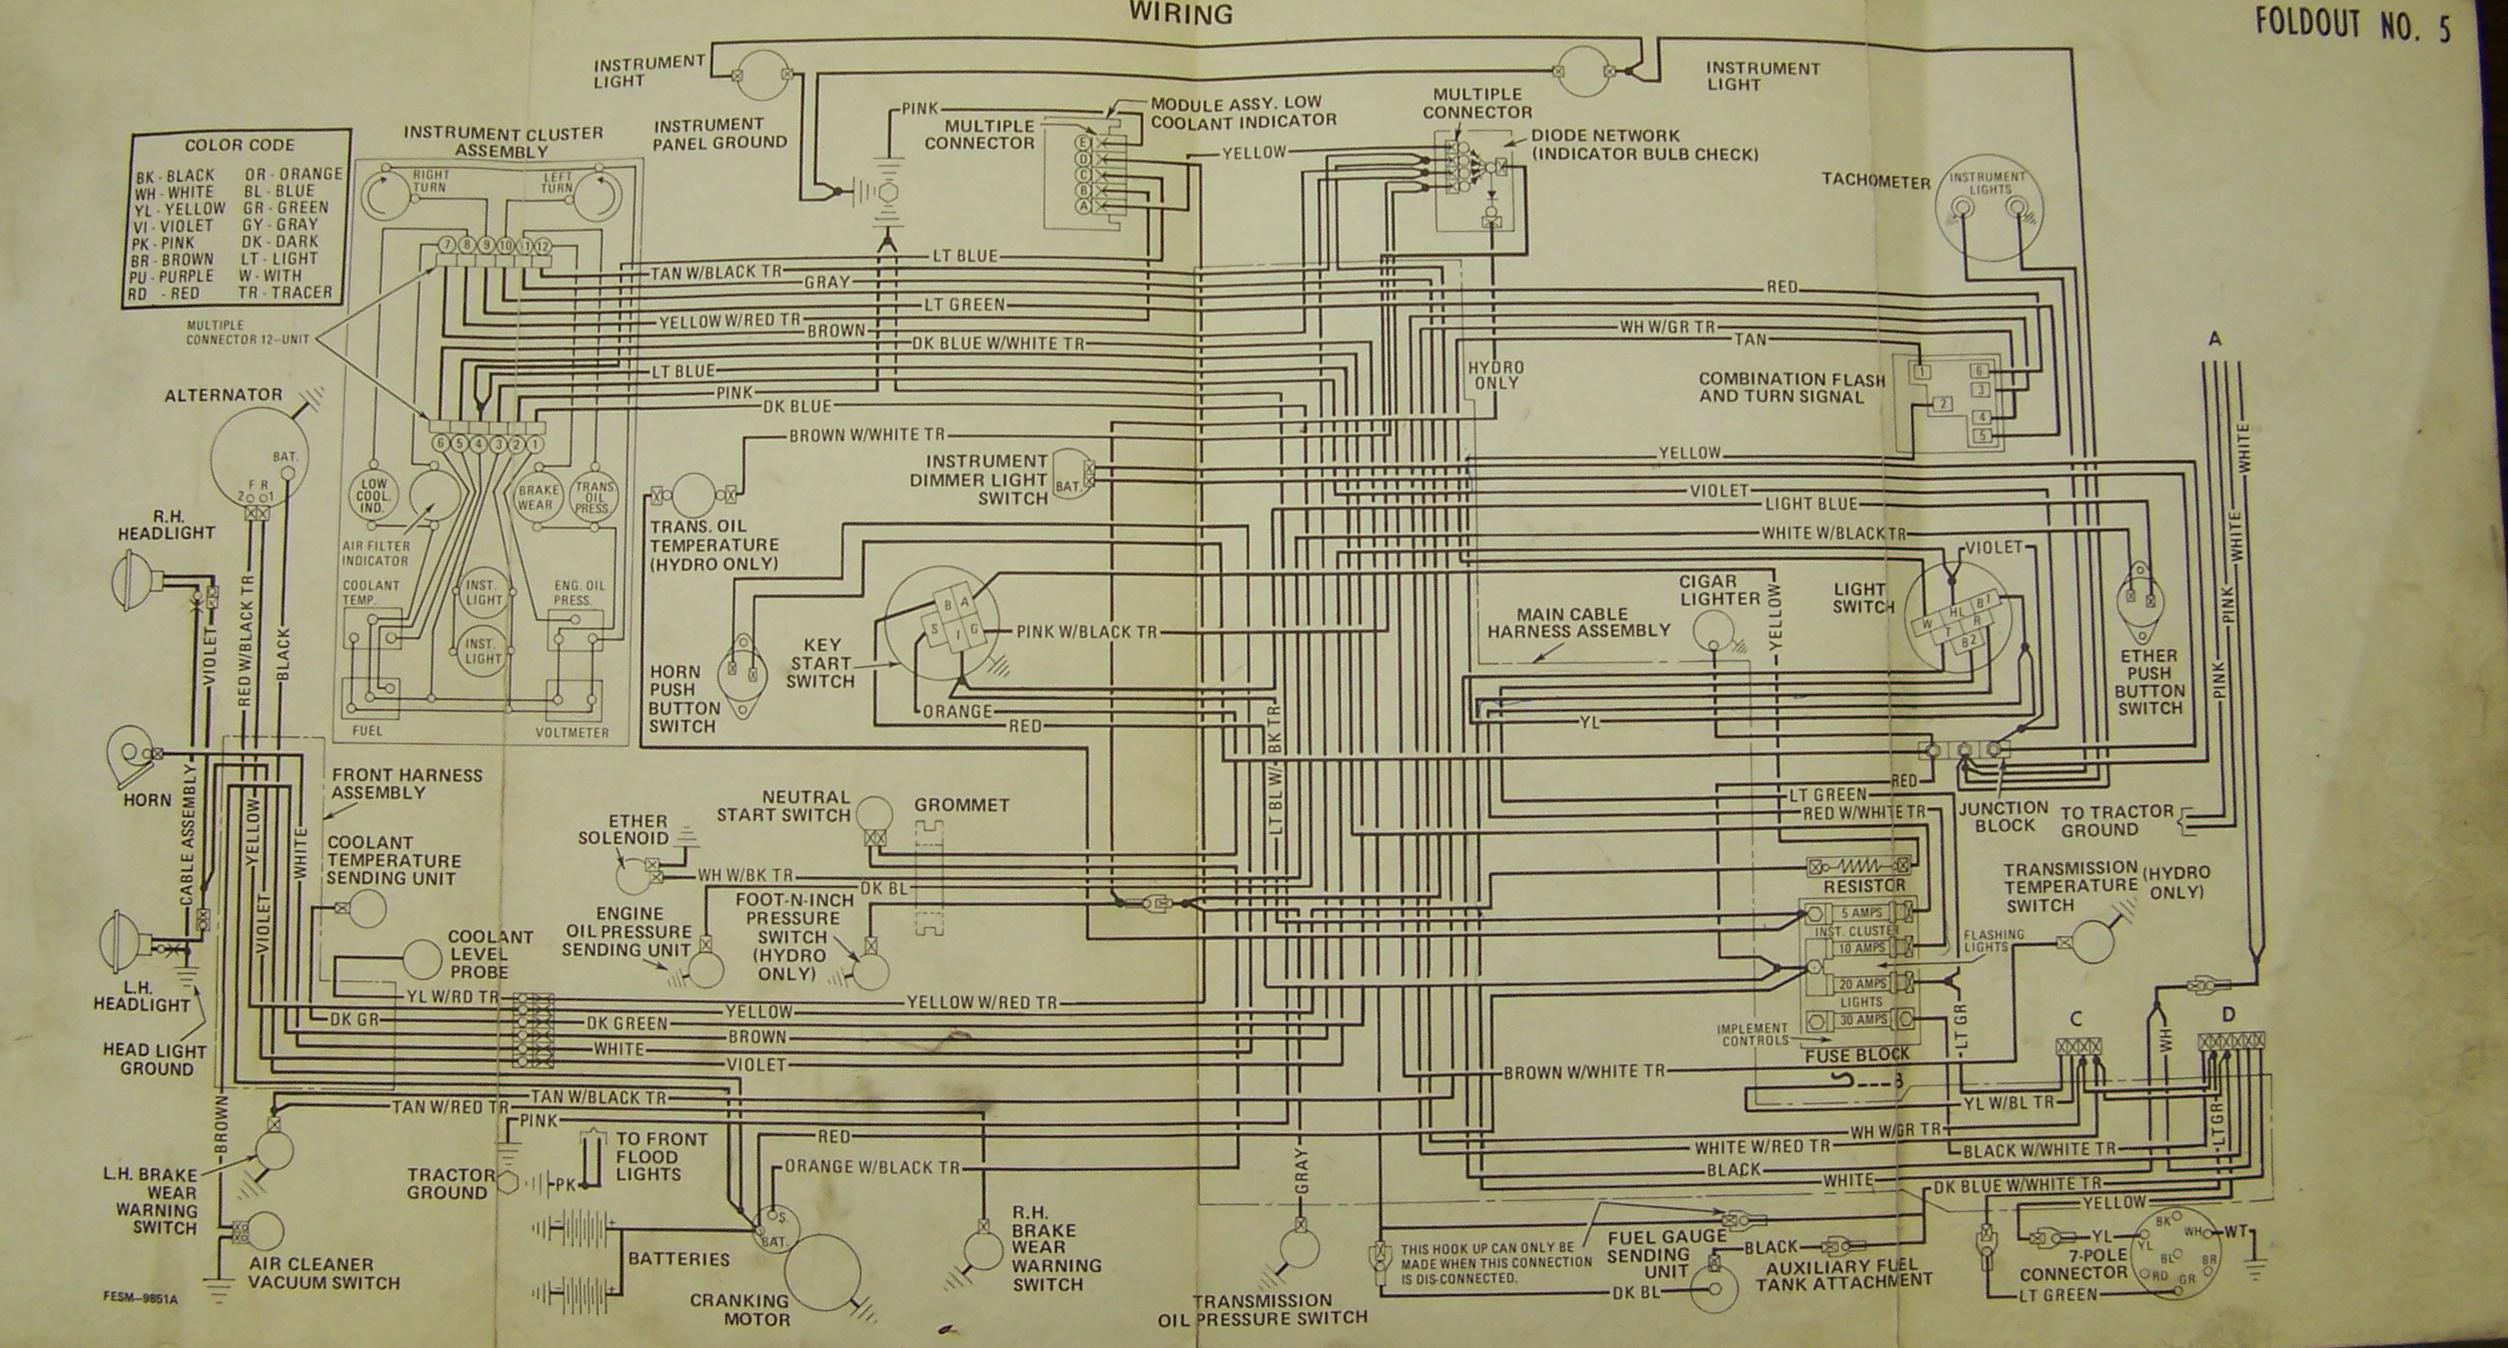 [SCHEMATICS_4NL]  Carter & Gruenewald Co. Inc. - IH-FARMALL Tractor Electrical Wiring Diagrams | Ih 454 Gas Wiring Diagram |  | Carter and Gruenewald